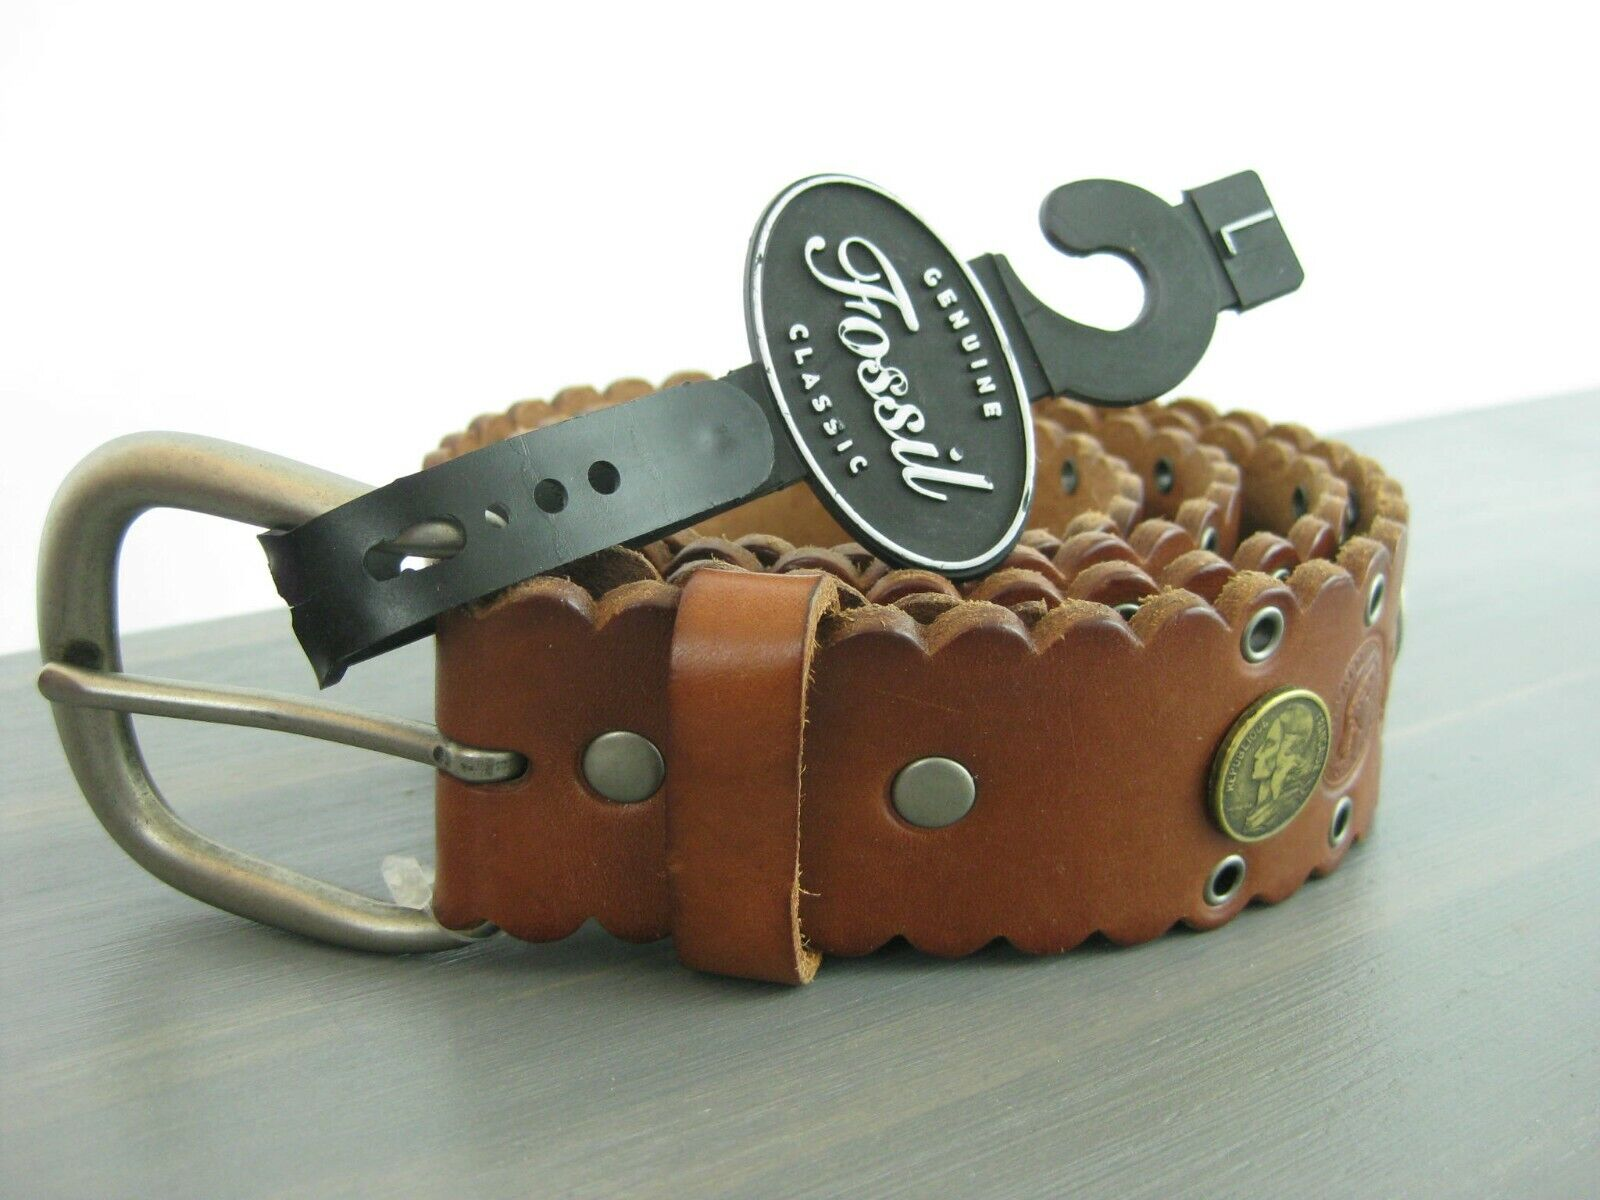 NWT Fossil Tan Brown Leather Money Grommets Women Belt Size